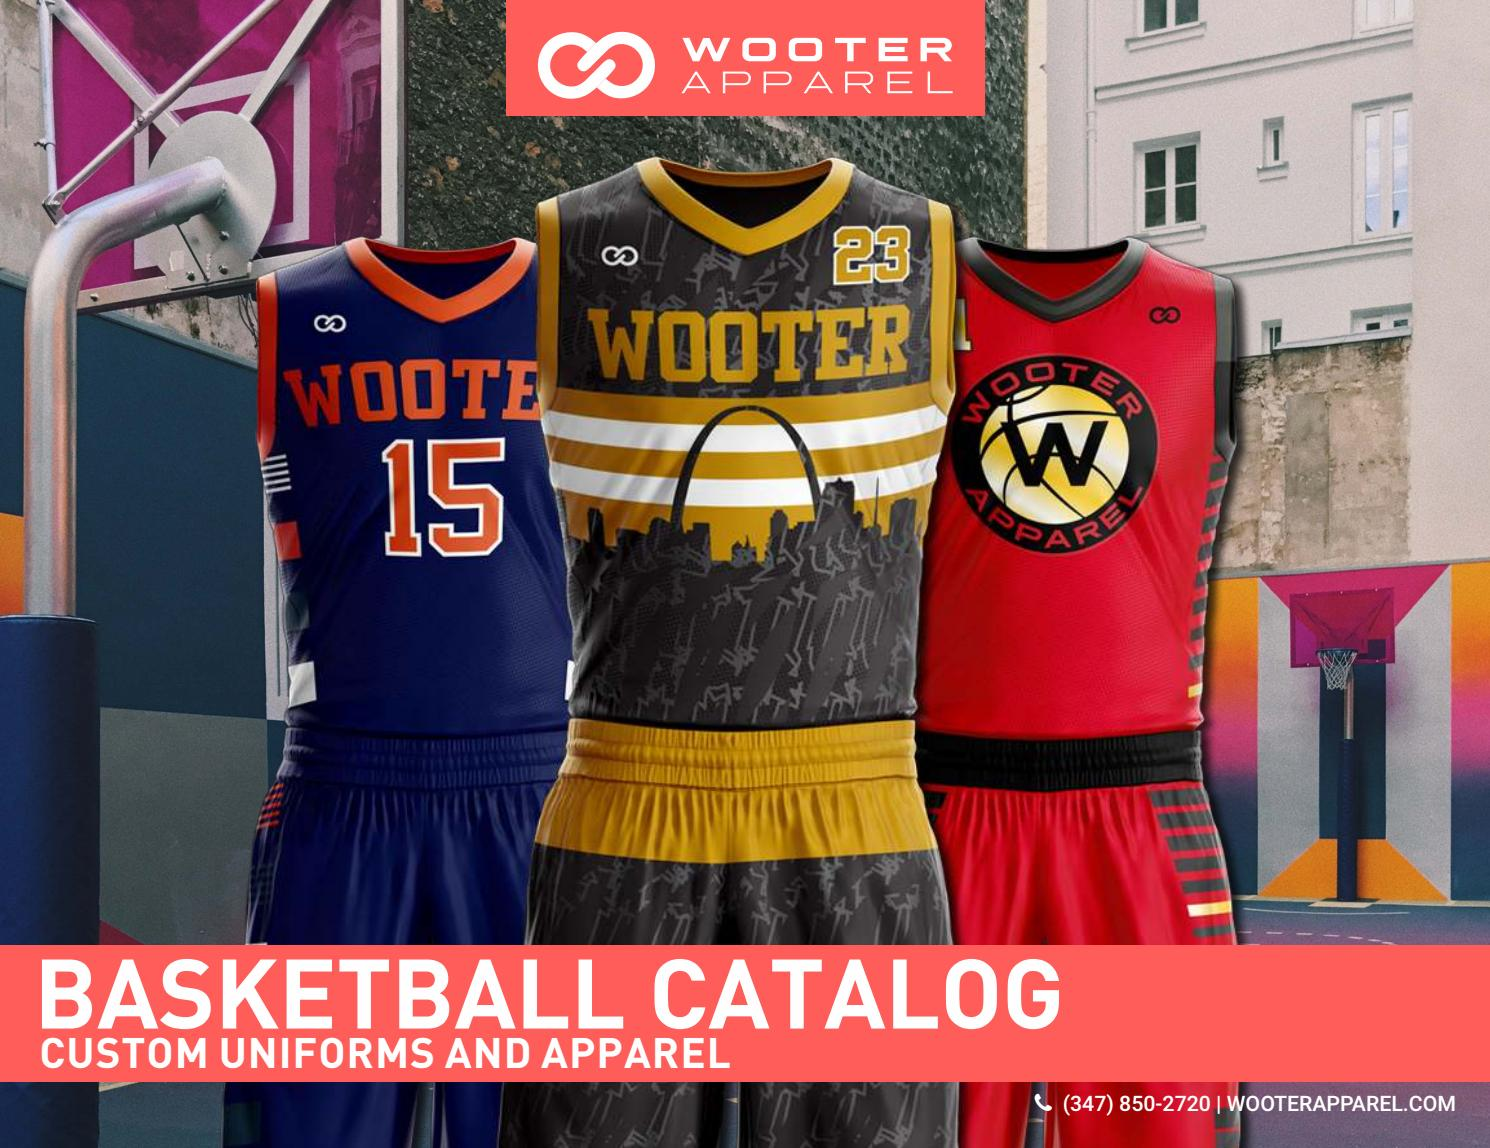 081f2fa7a07 Wooter Apparel - Apparel Design - Basketball Catalog Design by Tyrone  Rieschiek - issuu